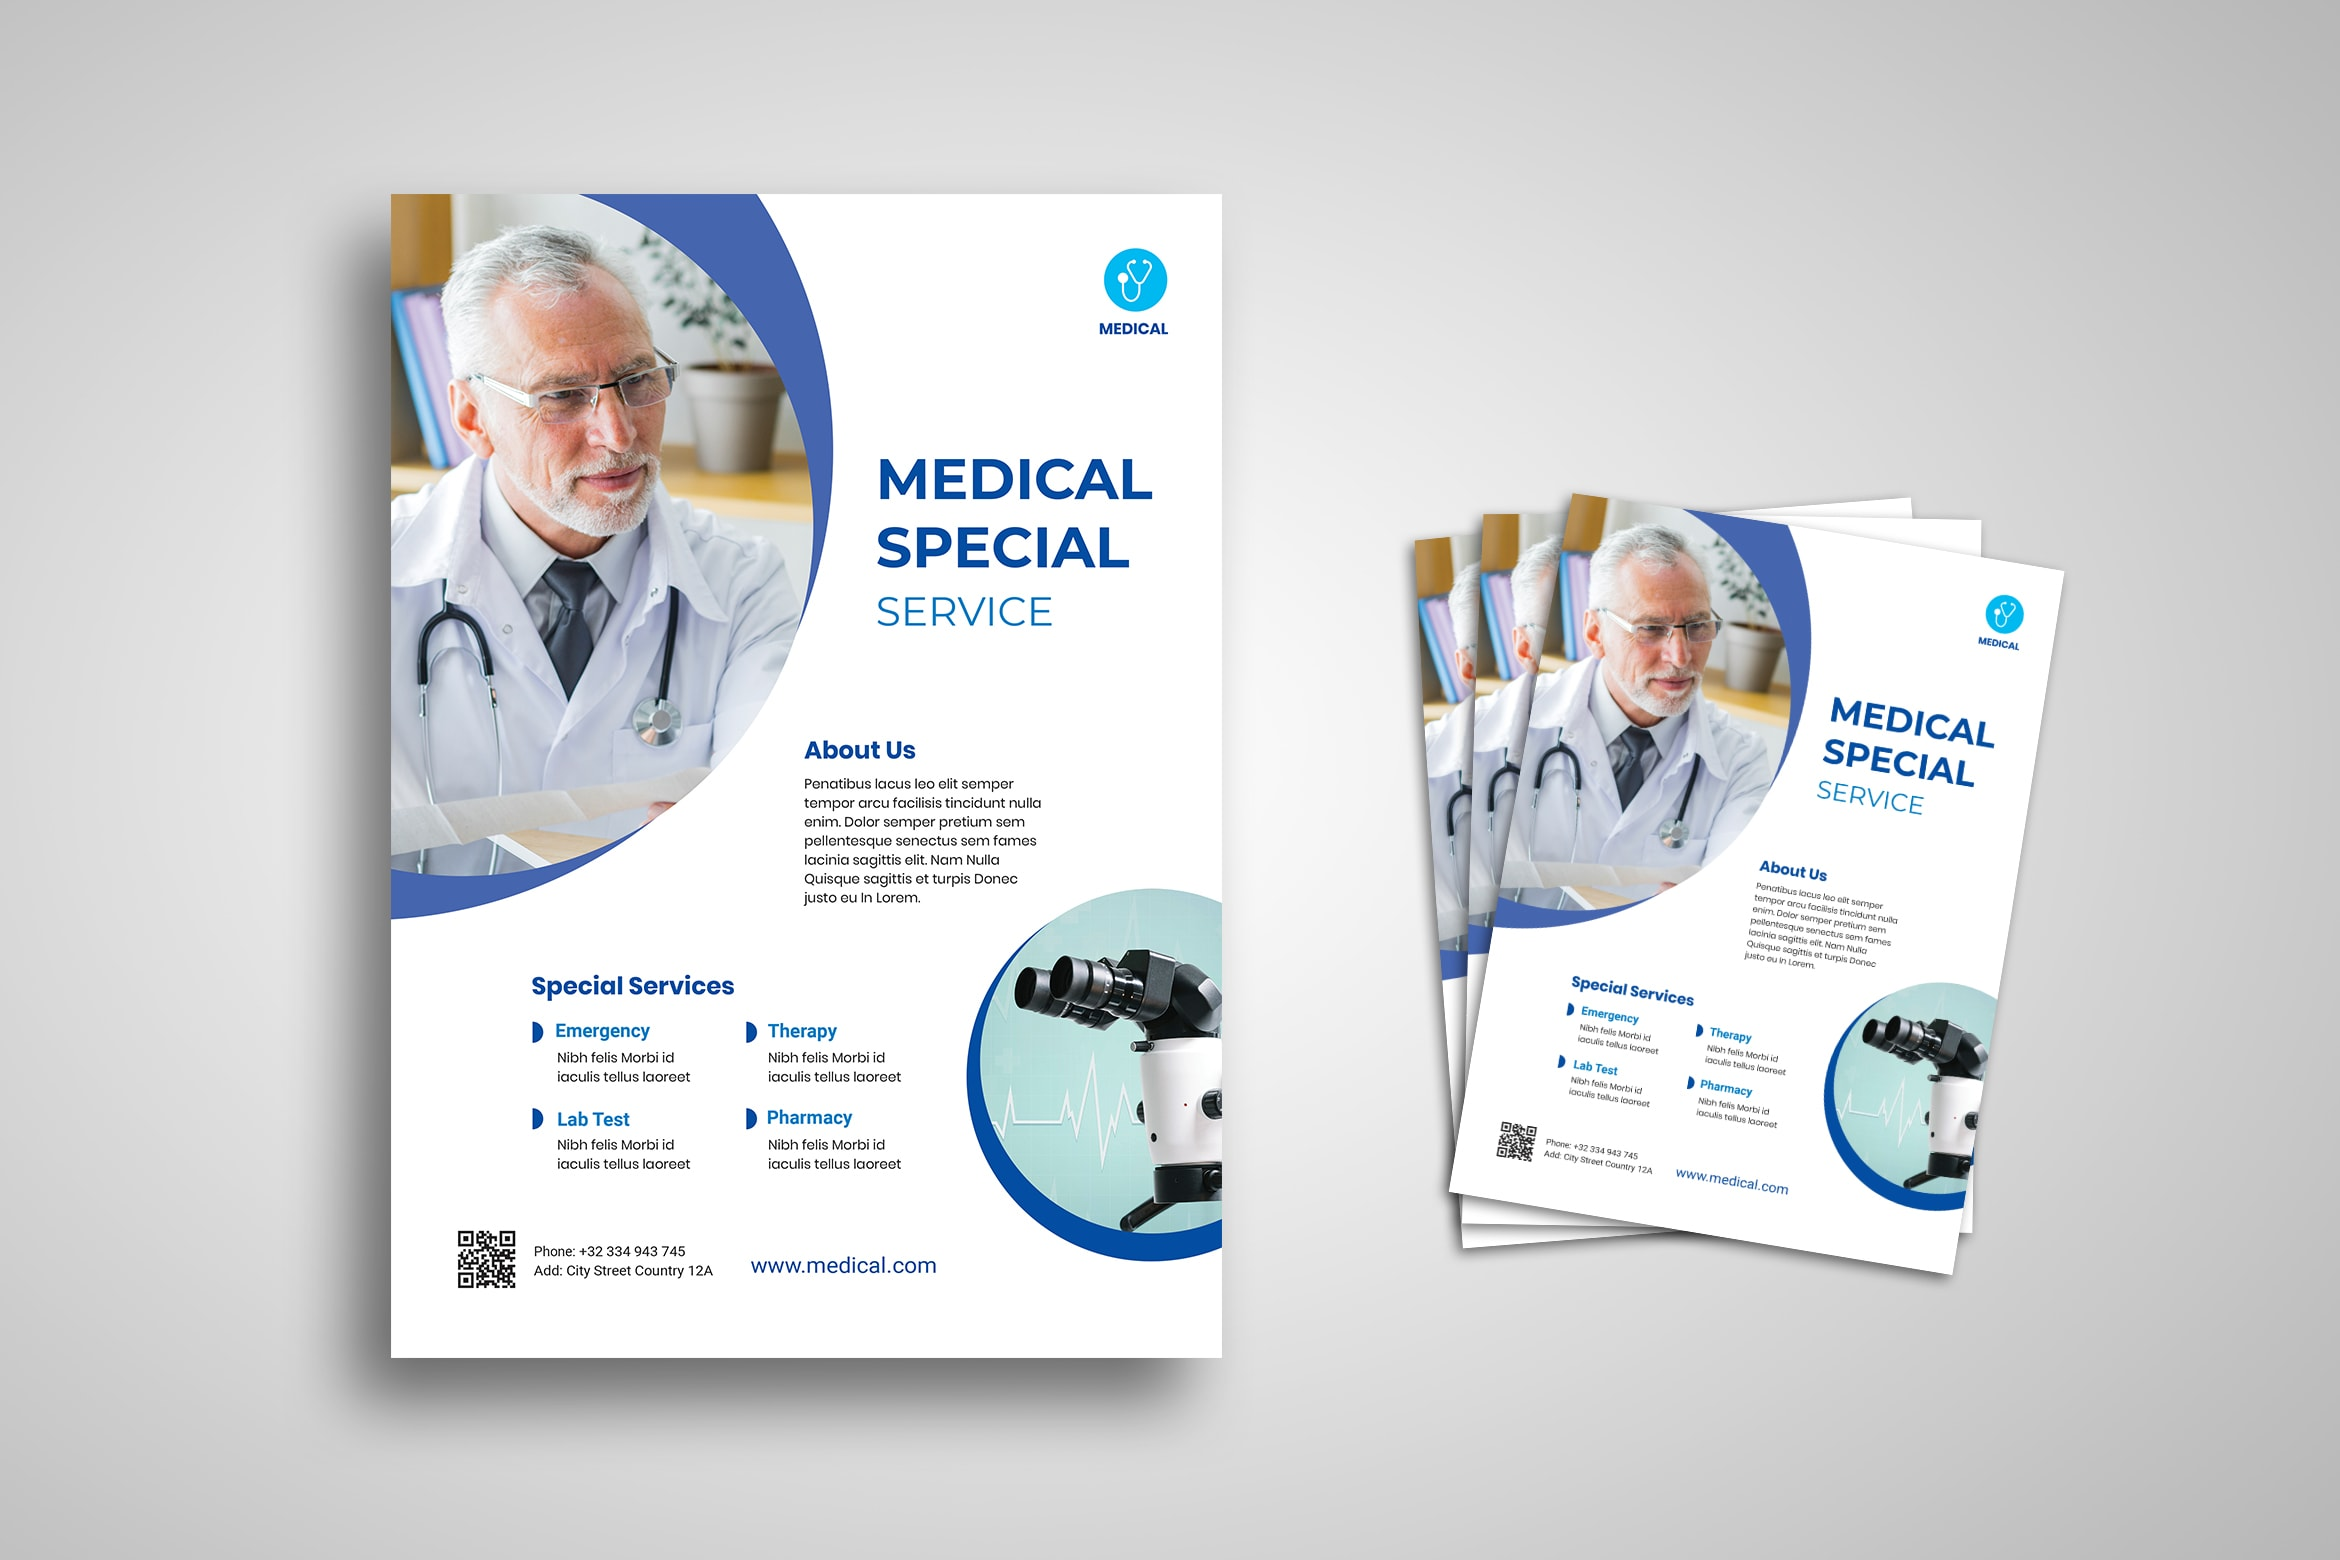 Flyer Template - Medical Special Service